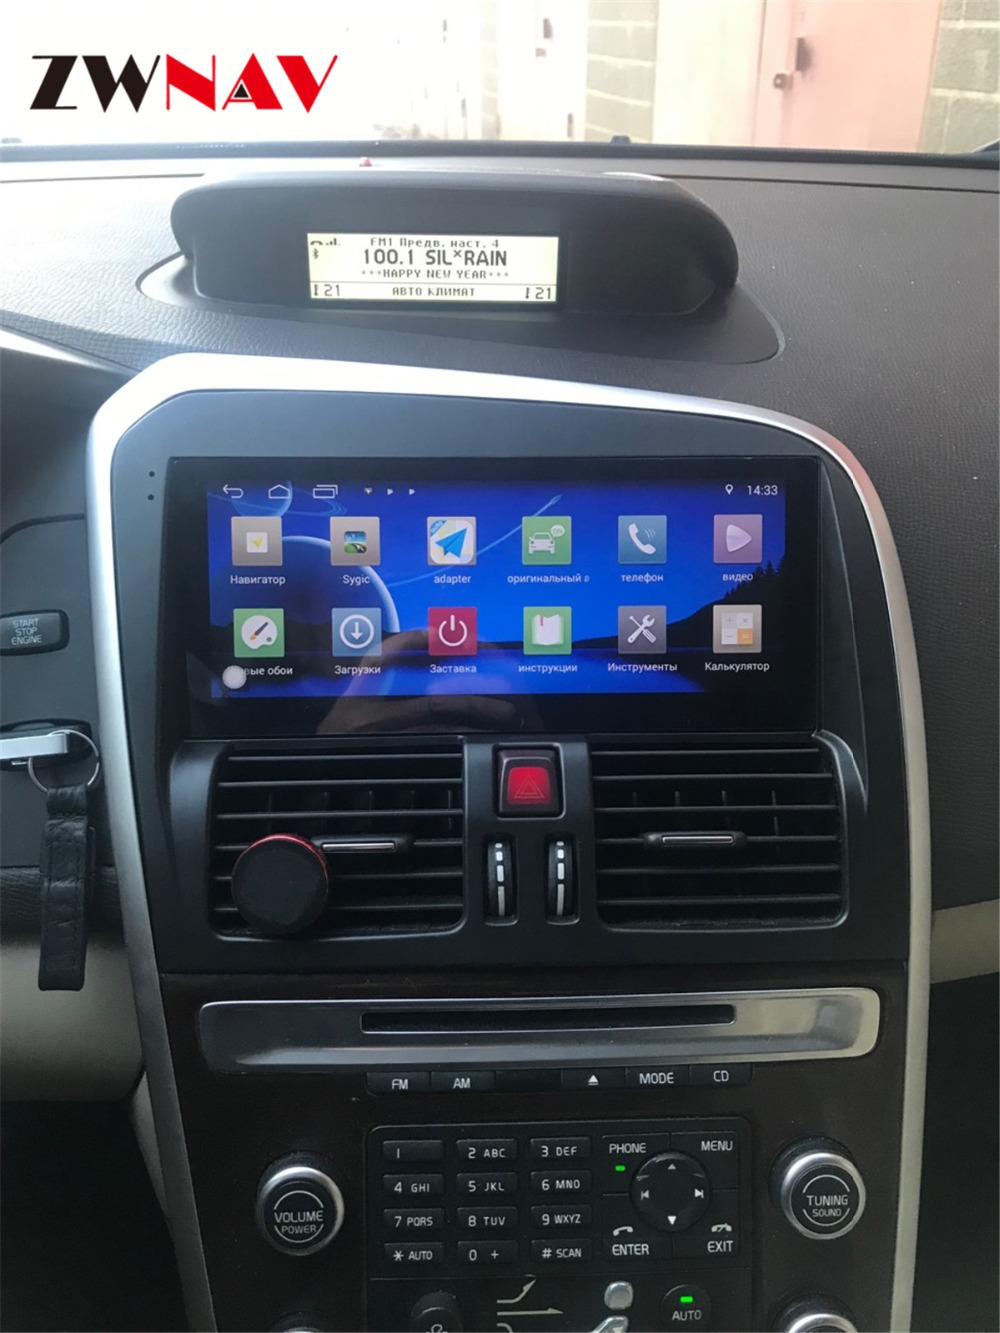 8.8 Inch Android 7 Systen Car No DVD Player For <font><b>Volvo</b></font> <font><b>XC60</b></font> 2009 2010 - 2017 Left Steering Wheel Car GPS Multimedia Navigation image